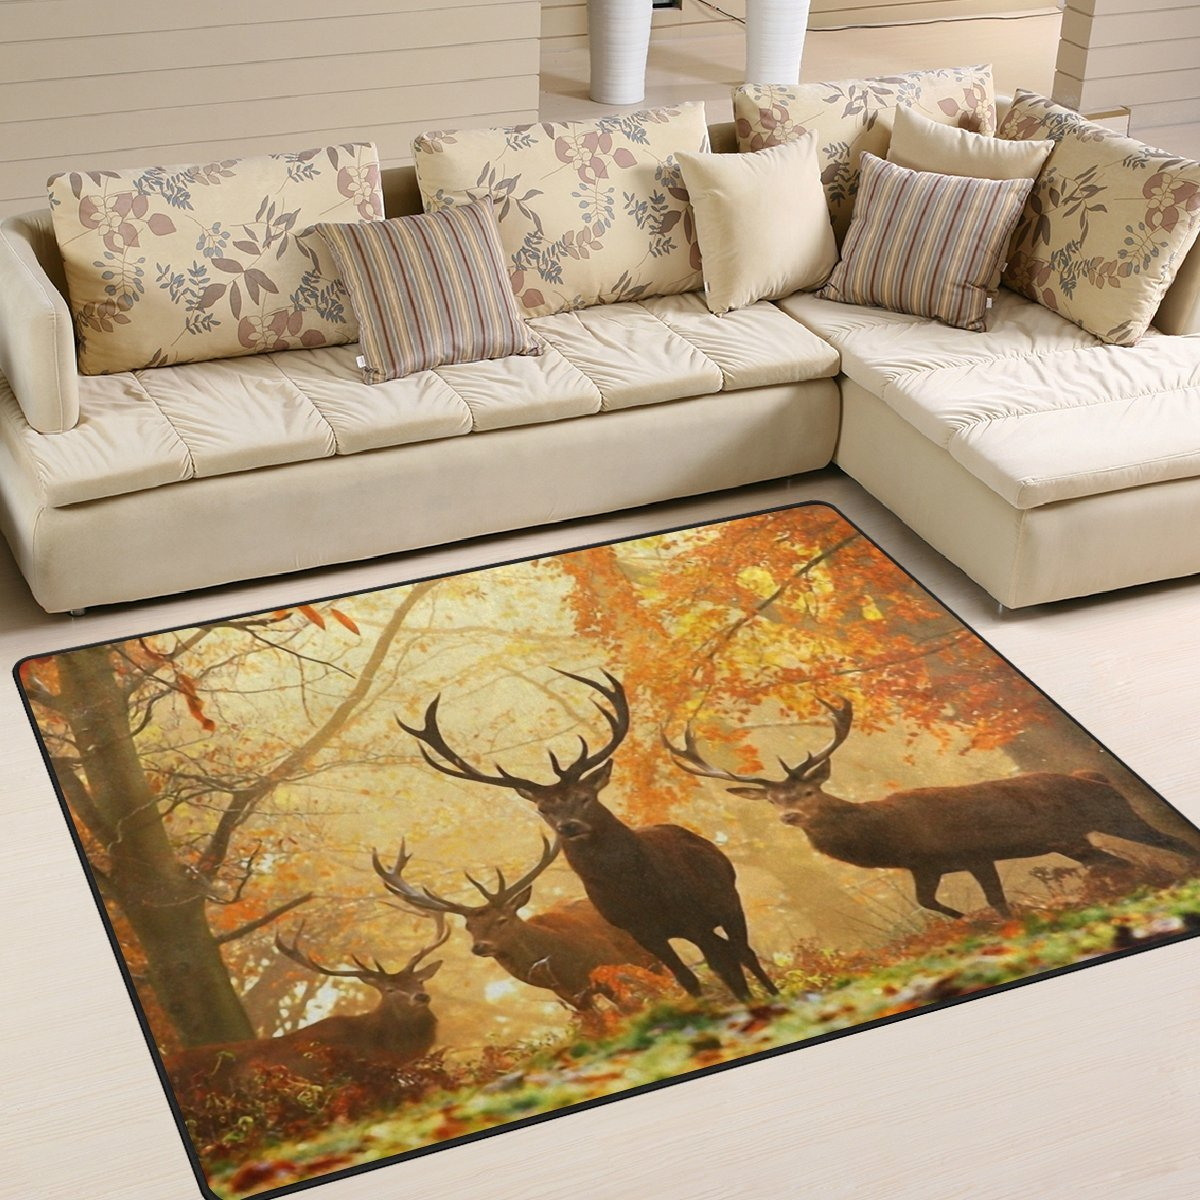 Naanle Animal Area Rug 5'x7', Deer in Autumn Forest Polyester Area Rug Mat for Living Dining Dorm Room Bedroom Home Decorative